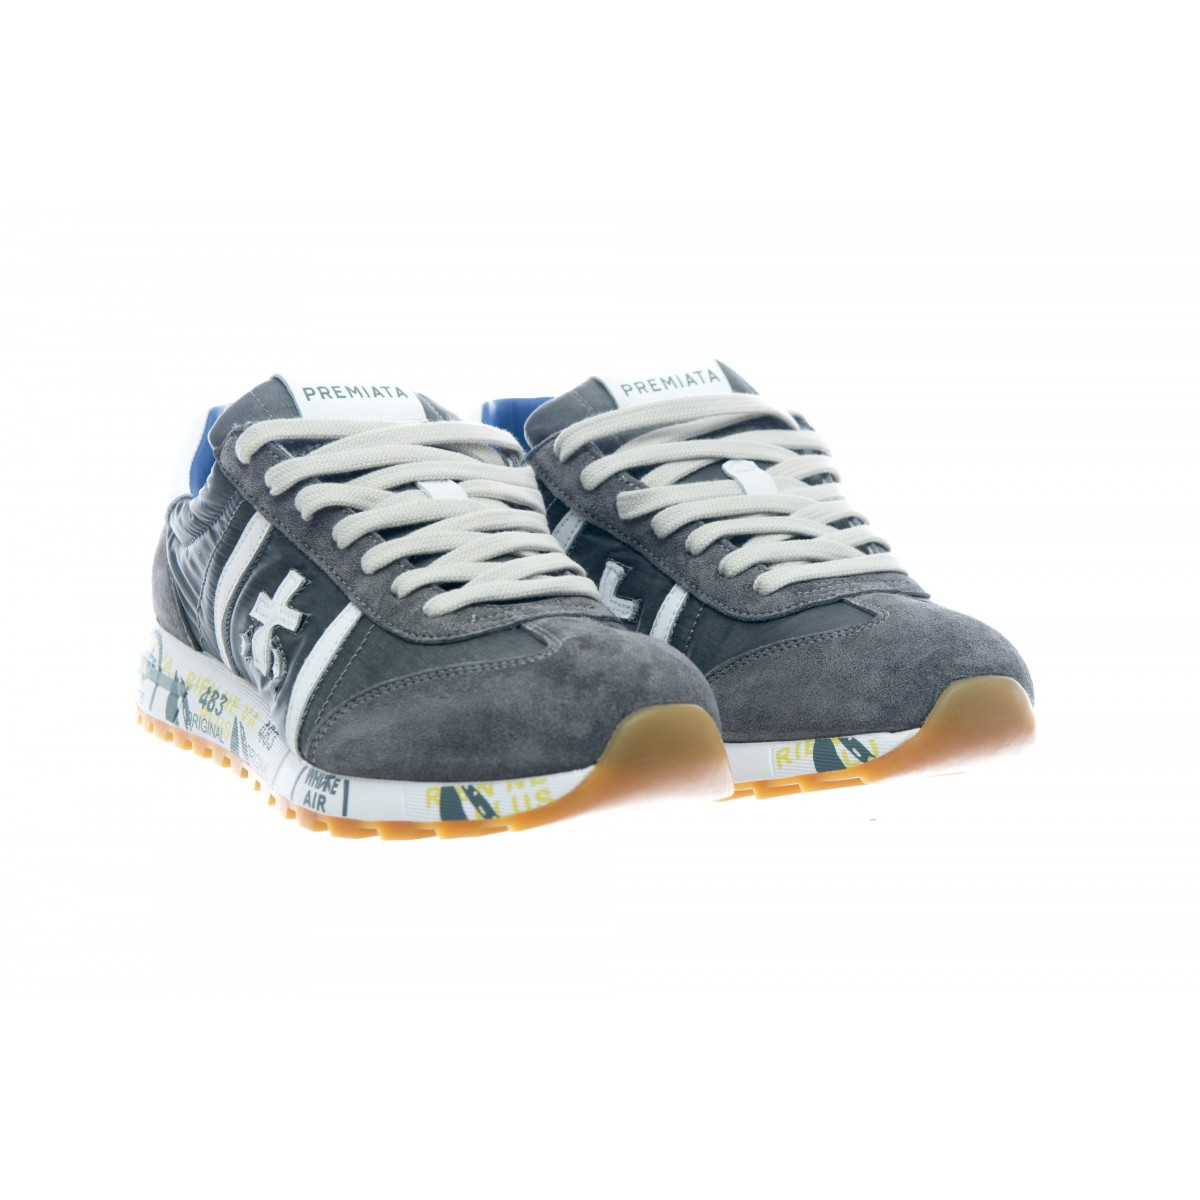 Scarpa - Lucy 4575